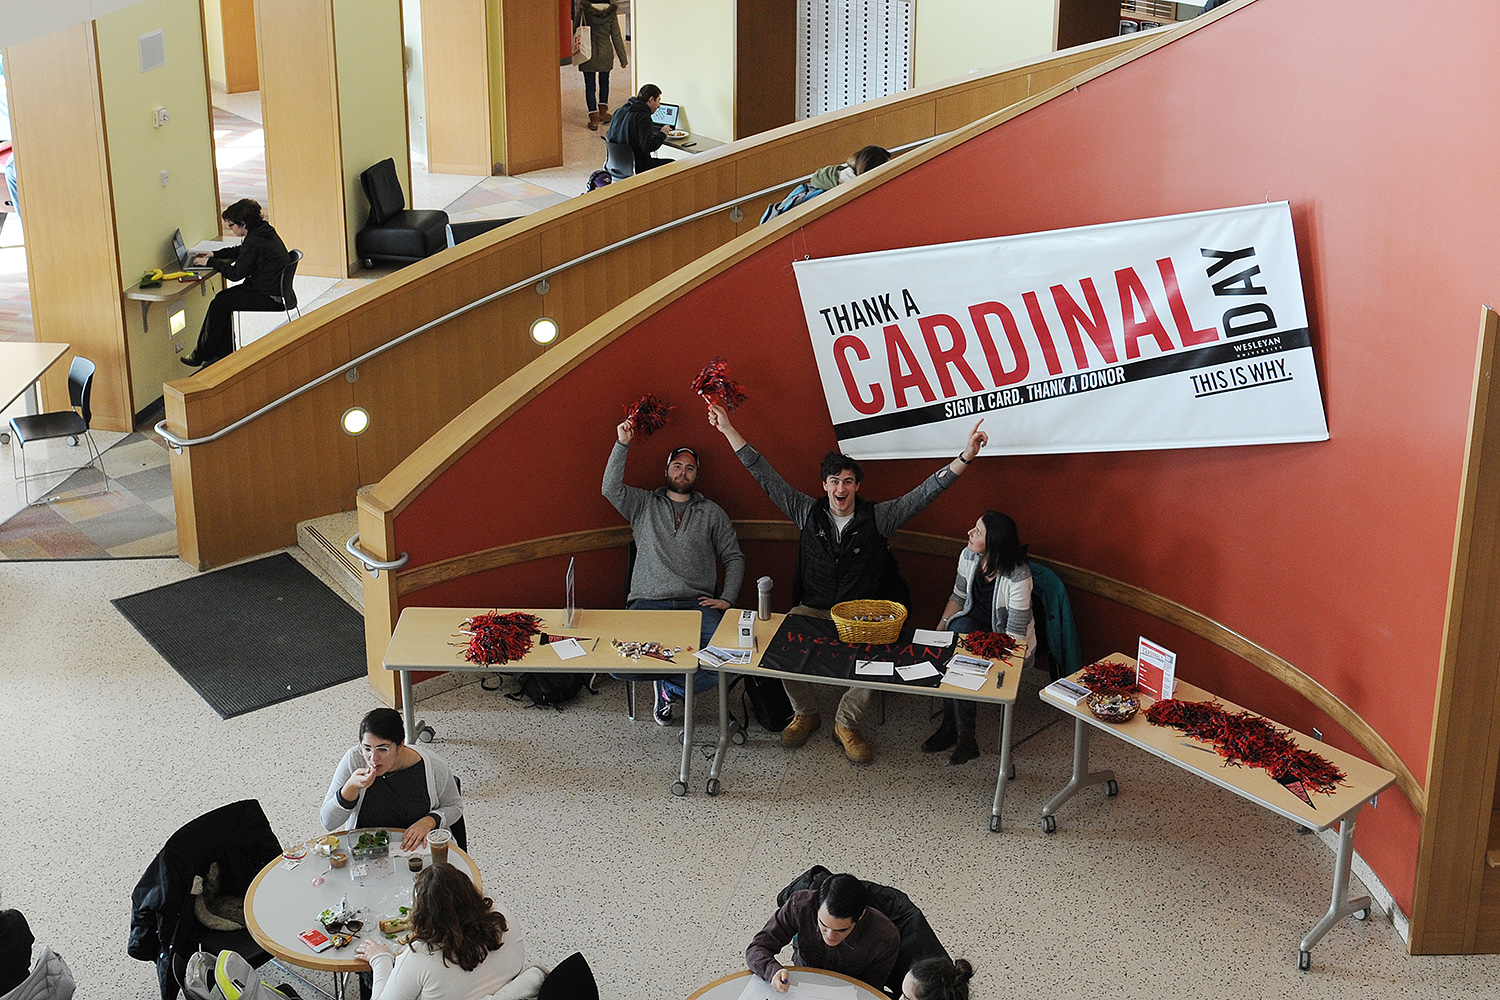 On Feb. 21, staff from University Relations and the Red and Black Society hosted Thank a Cardinal Day in Usdan University Center.